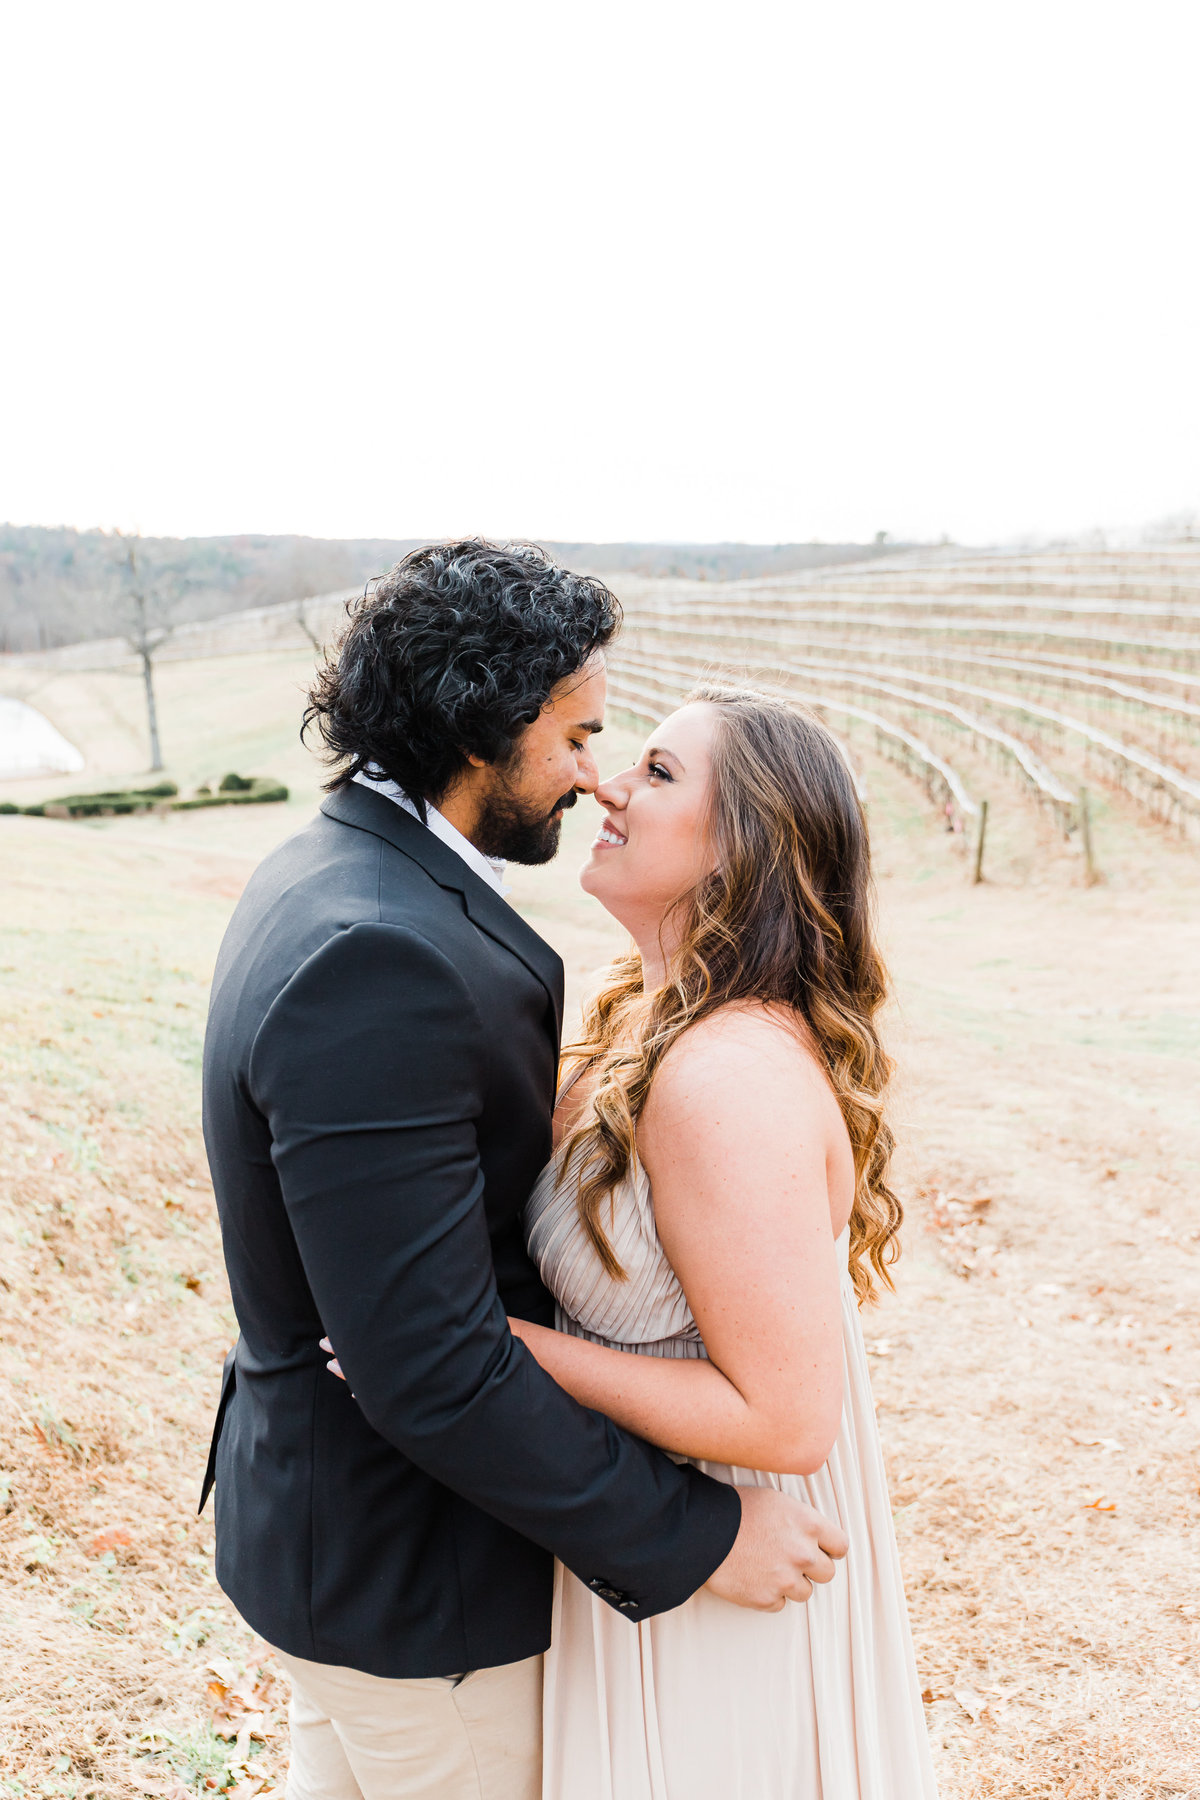 Motaluce Winery, Gainesville, GA Couple Engagement Anniversary Photography Session by Renee Jael-4